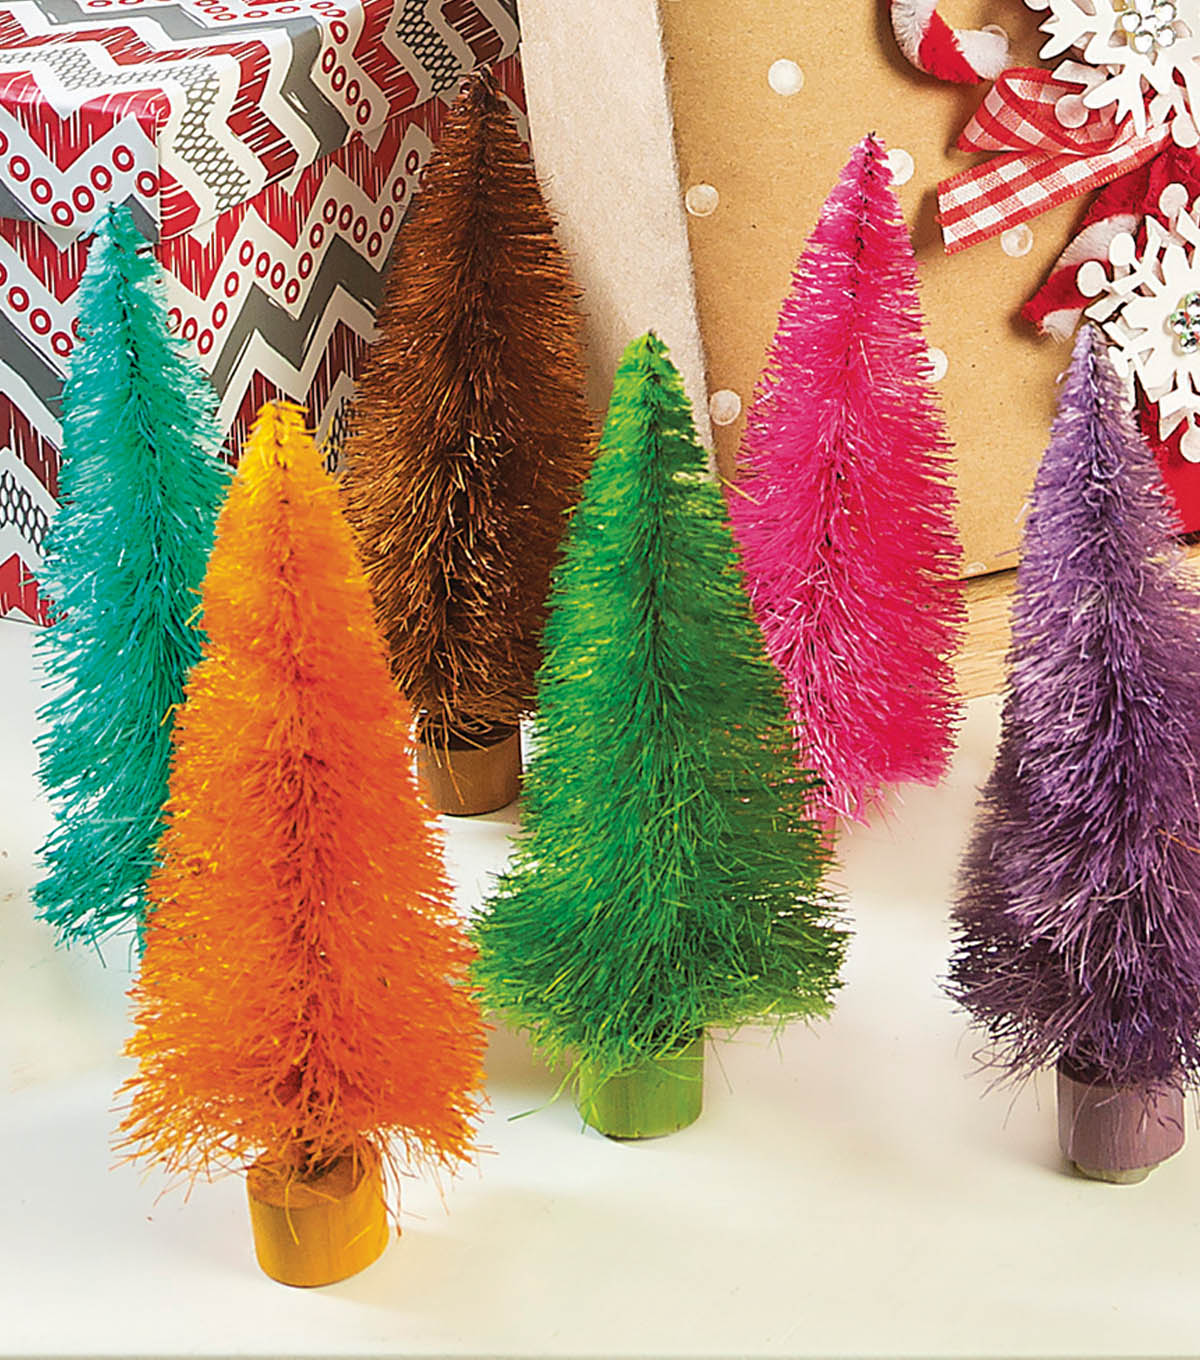 Dyed Christmas Trees